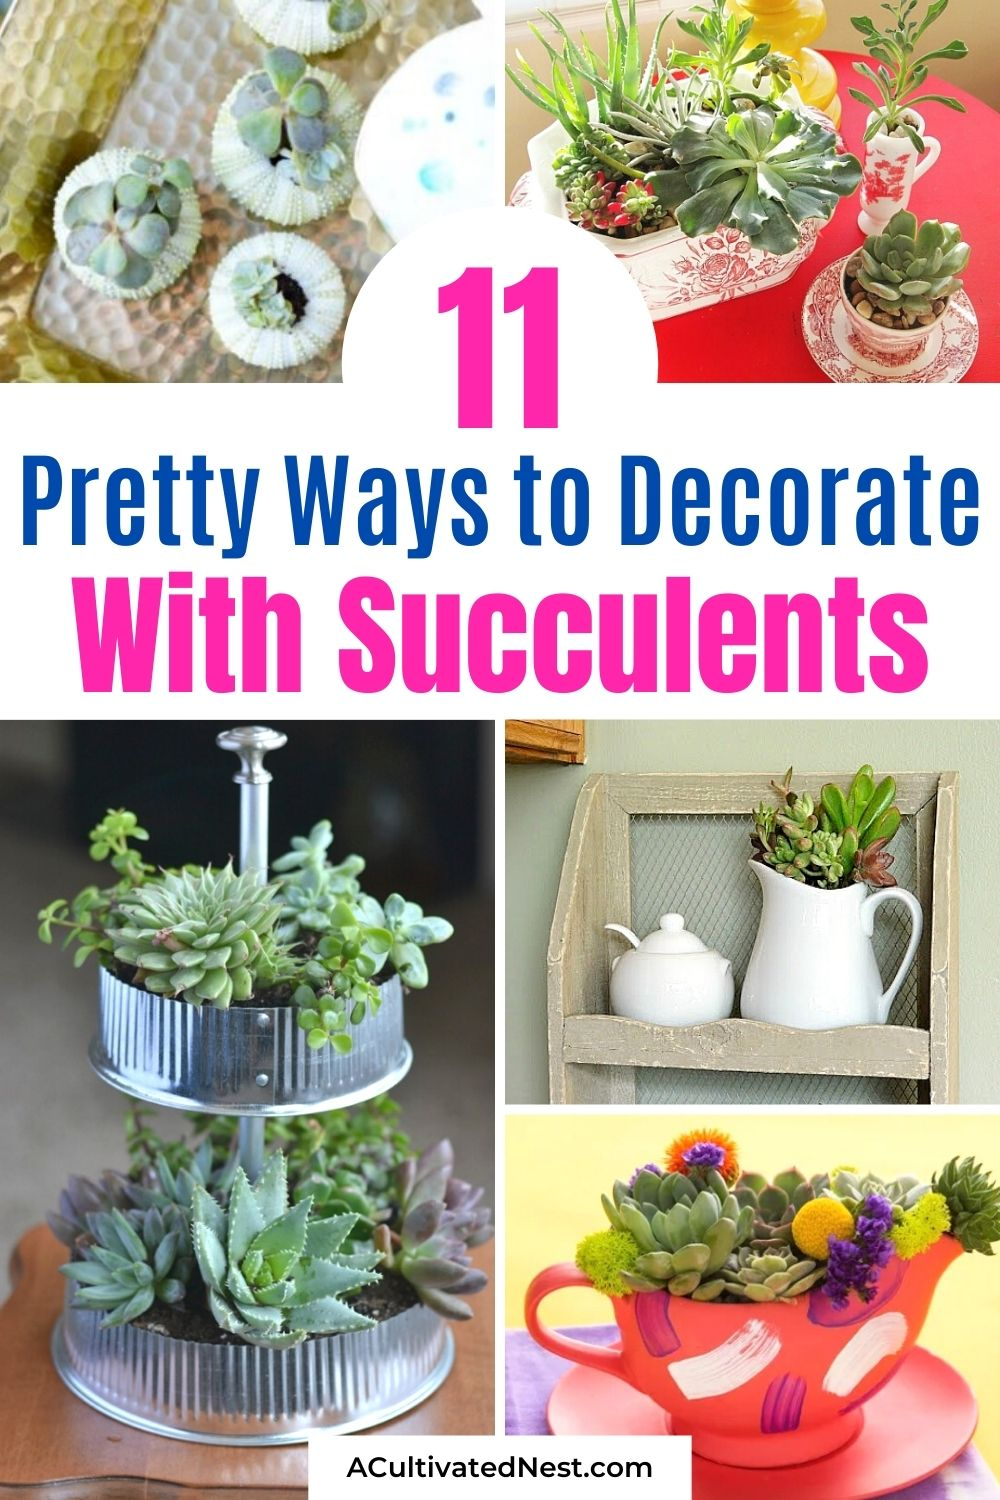 11 Beautiful Ways to Decorate With Succulents- If you want to decorate with plants, but want something easy to maintain, then you need to use succulents! For some great inspiration, check out these pretty ways to decorate with succulents! It's easy to make a beautiful succulent garden!   succulent container ideas #succulents #homeDecor #housePlants #indoorGardening #ACultivatedNest